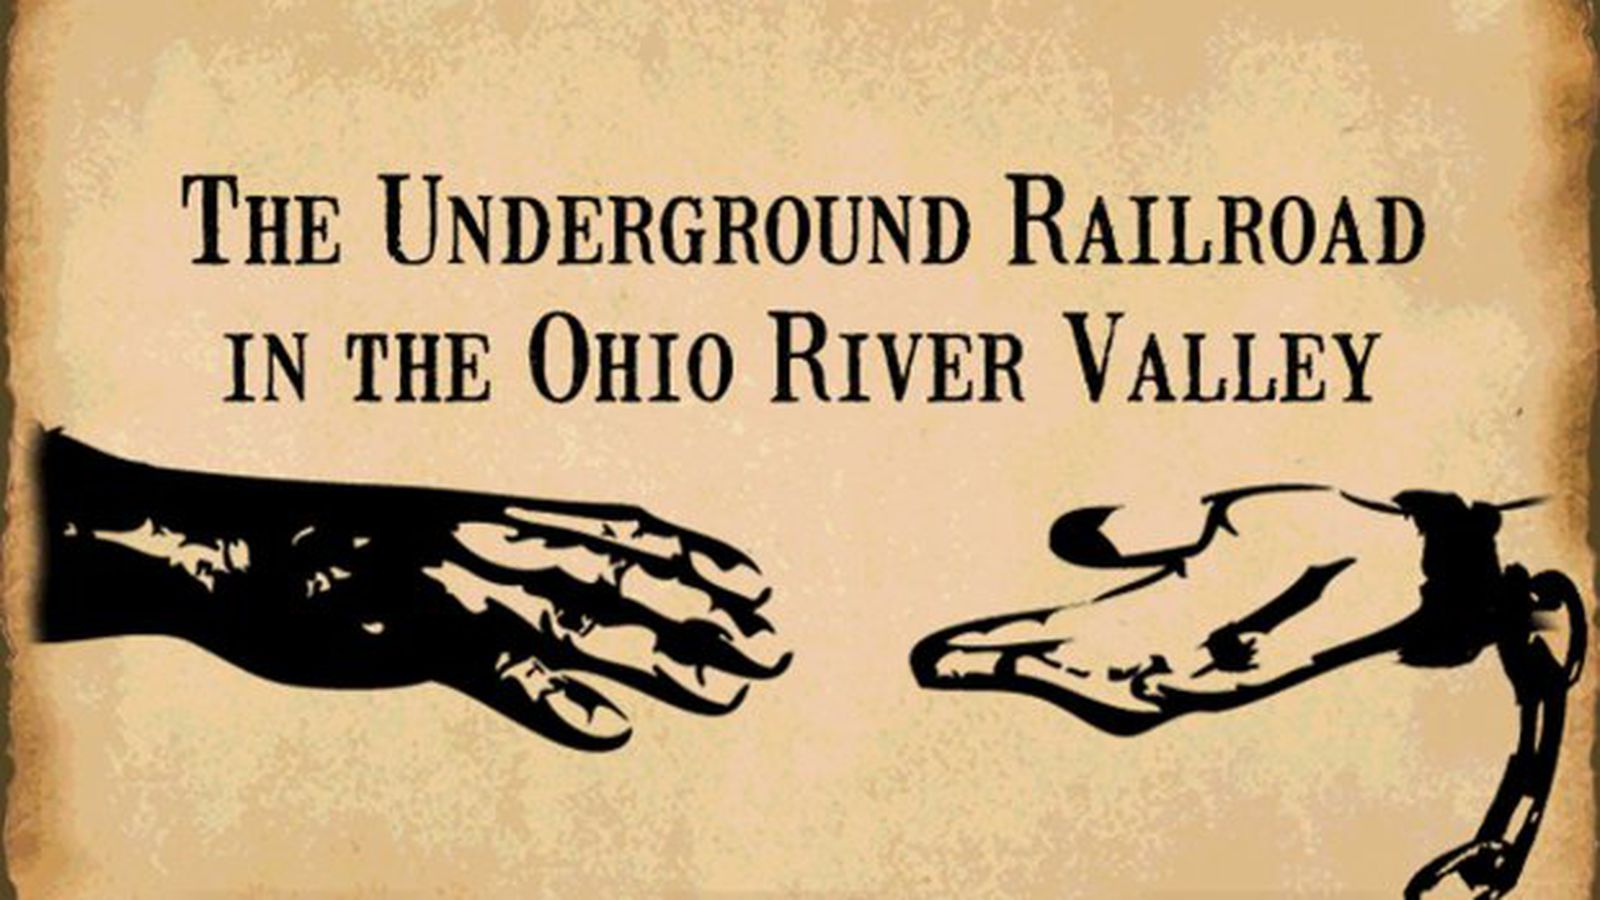 an overview of the underground railroad The underground railroad was a secret way for slaves to escape slavery i seem simply put together but is far more complex than originally thought of.